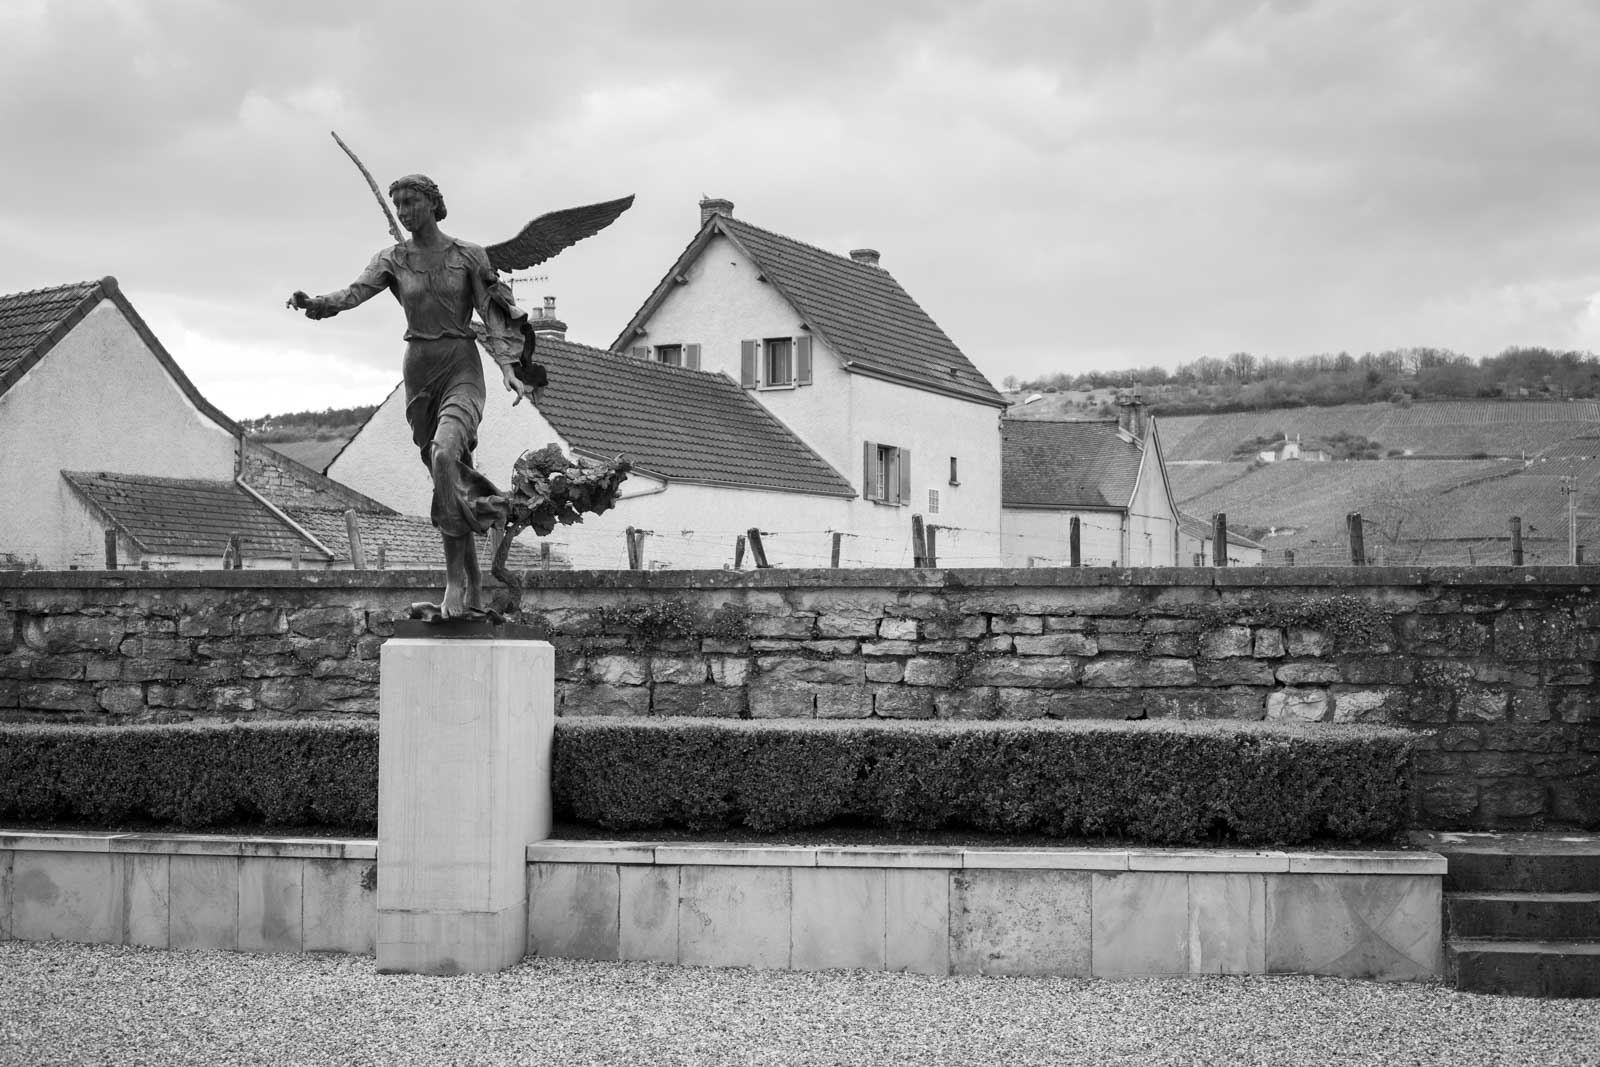 The angel-crowned courtyard at Domaine de la Romanée-Conti, in the village of Vosne-Romanée. The Grand Cru vineyard of Romanée-St-Vivant is just beyond the stone wall. ©Kevin Day / Opening a Bottle